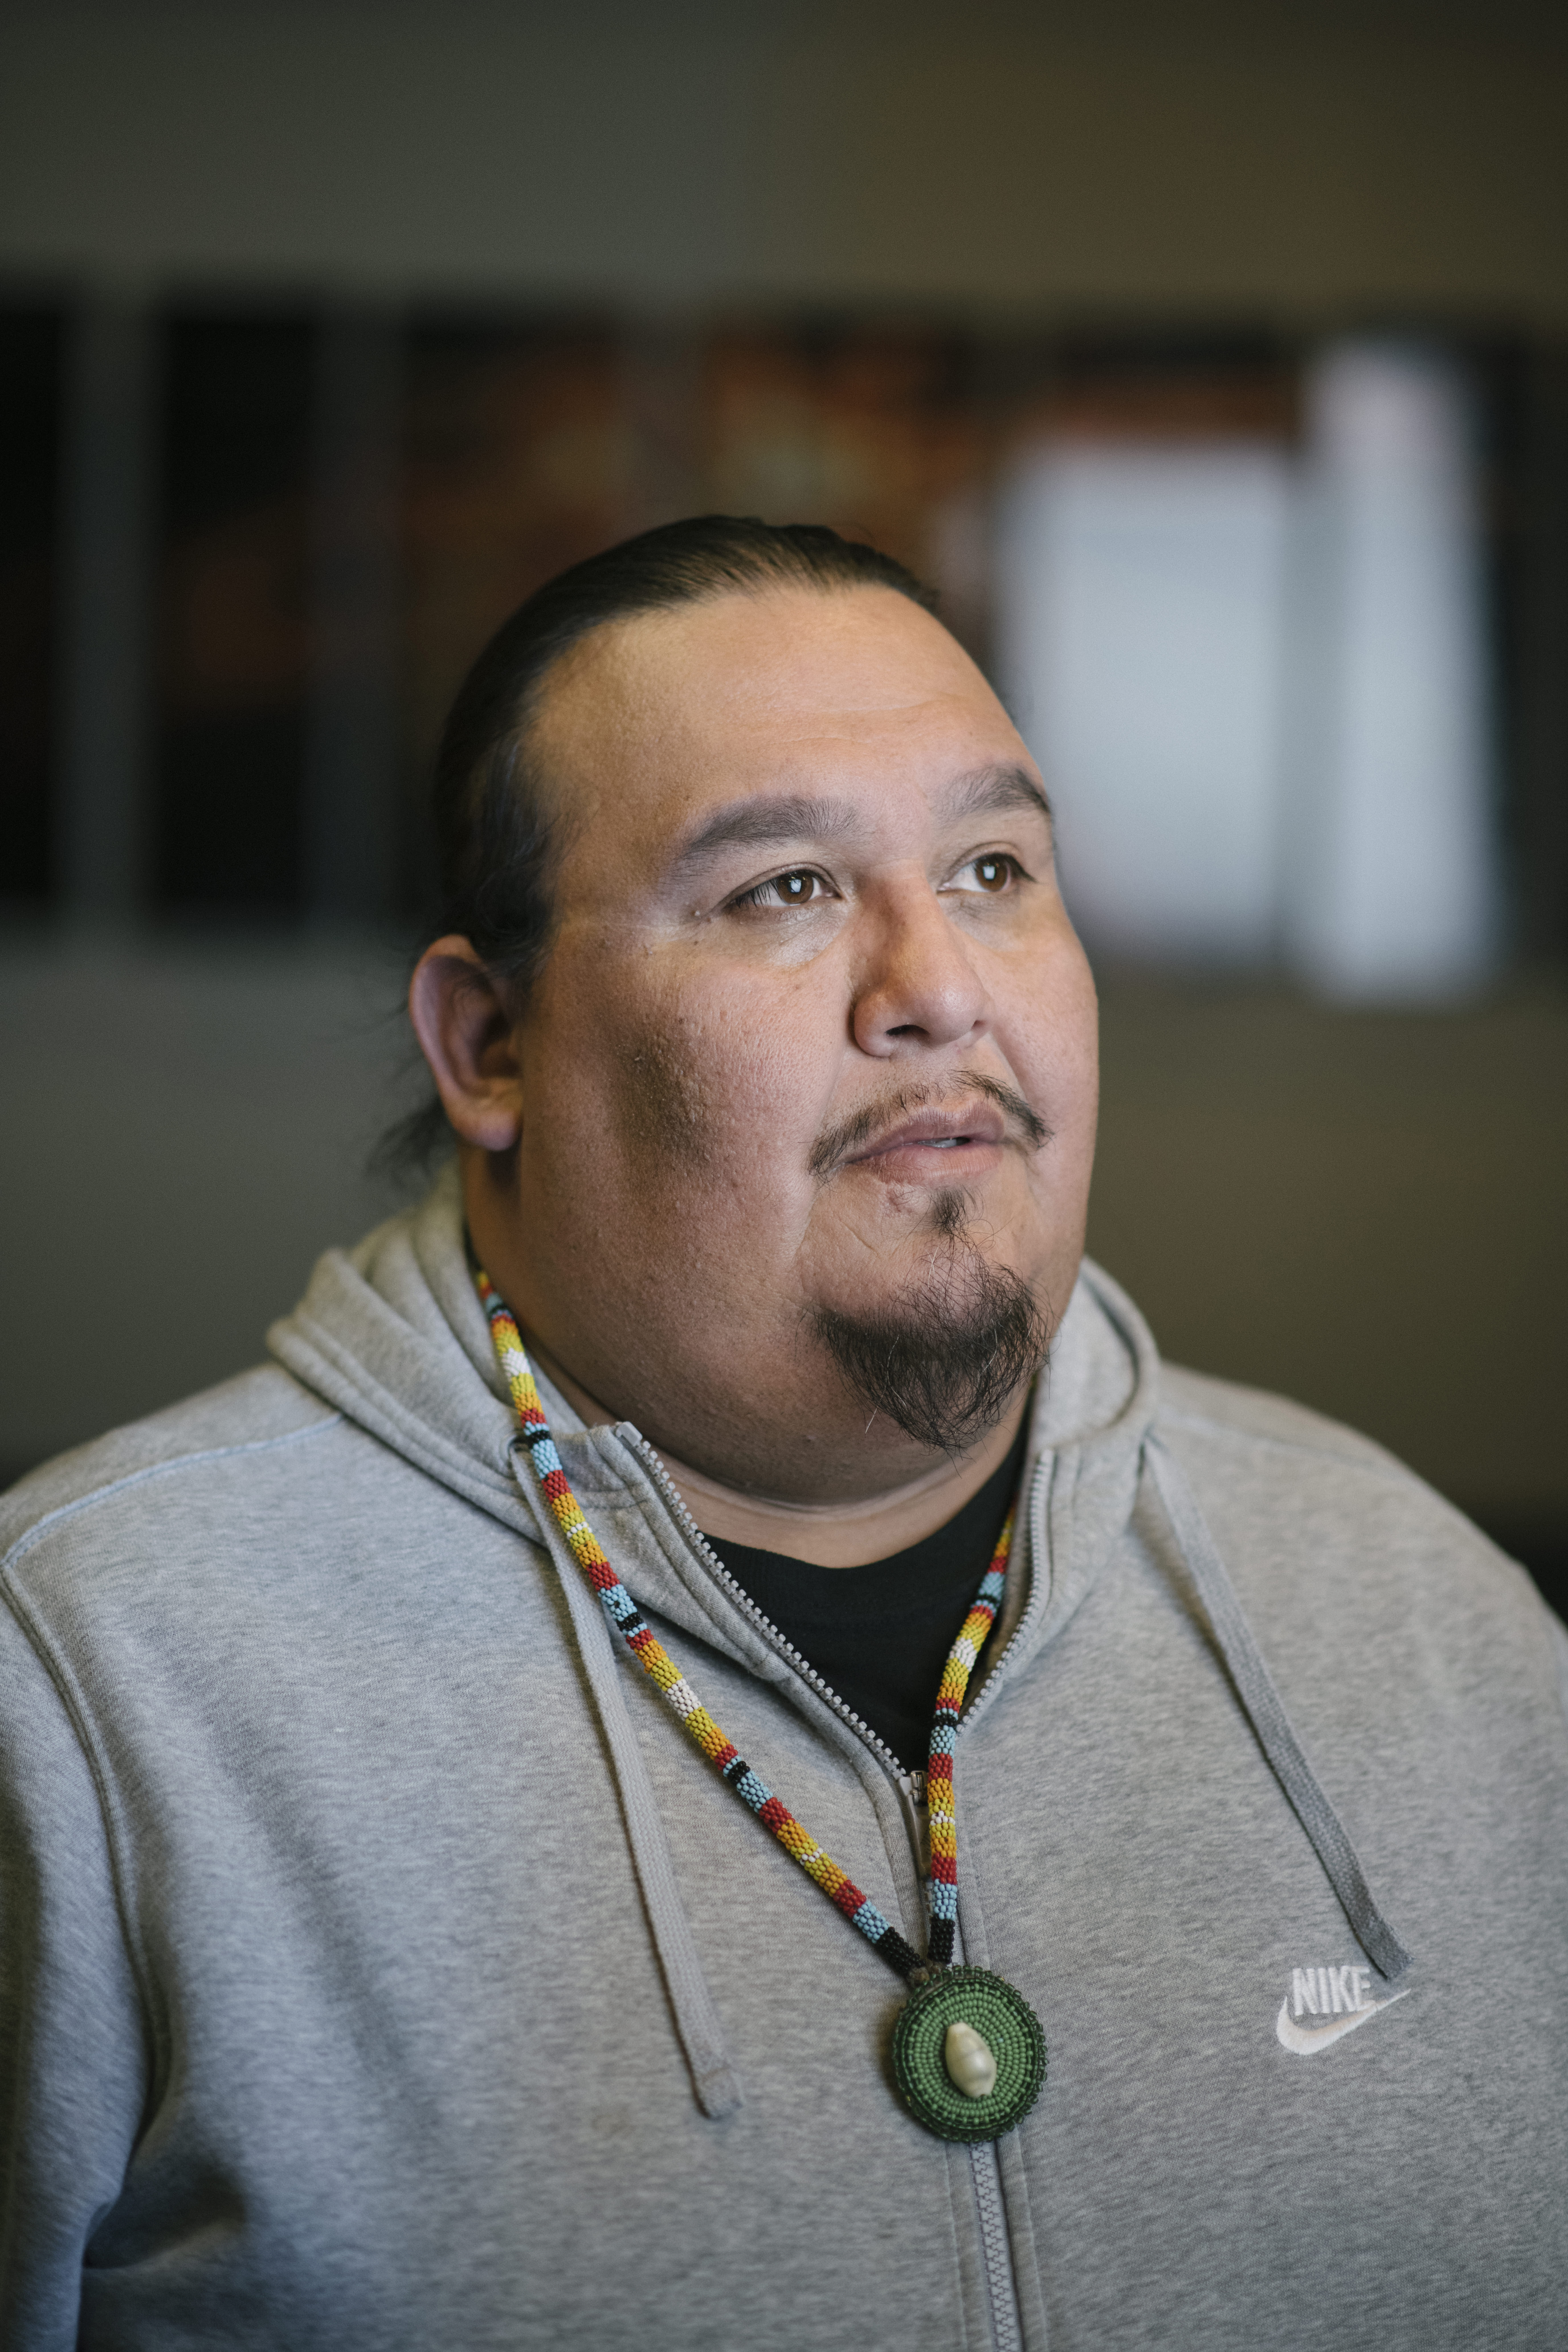 Guy Reiter, whose Menominee name is Anahkwet, is executive director of Menikanaehkem, a grassroots organization based on the Menominee Reservation.